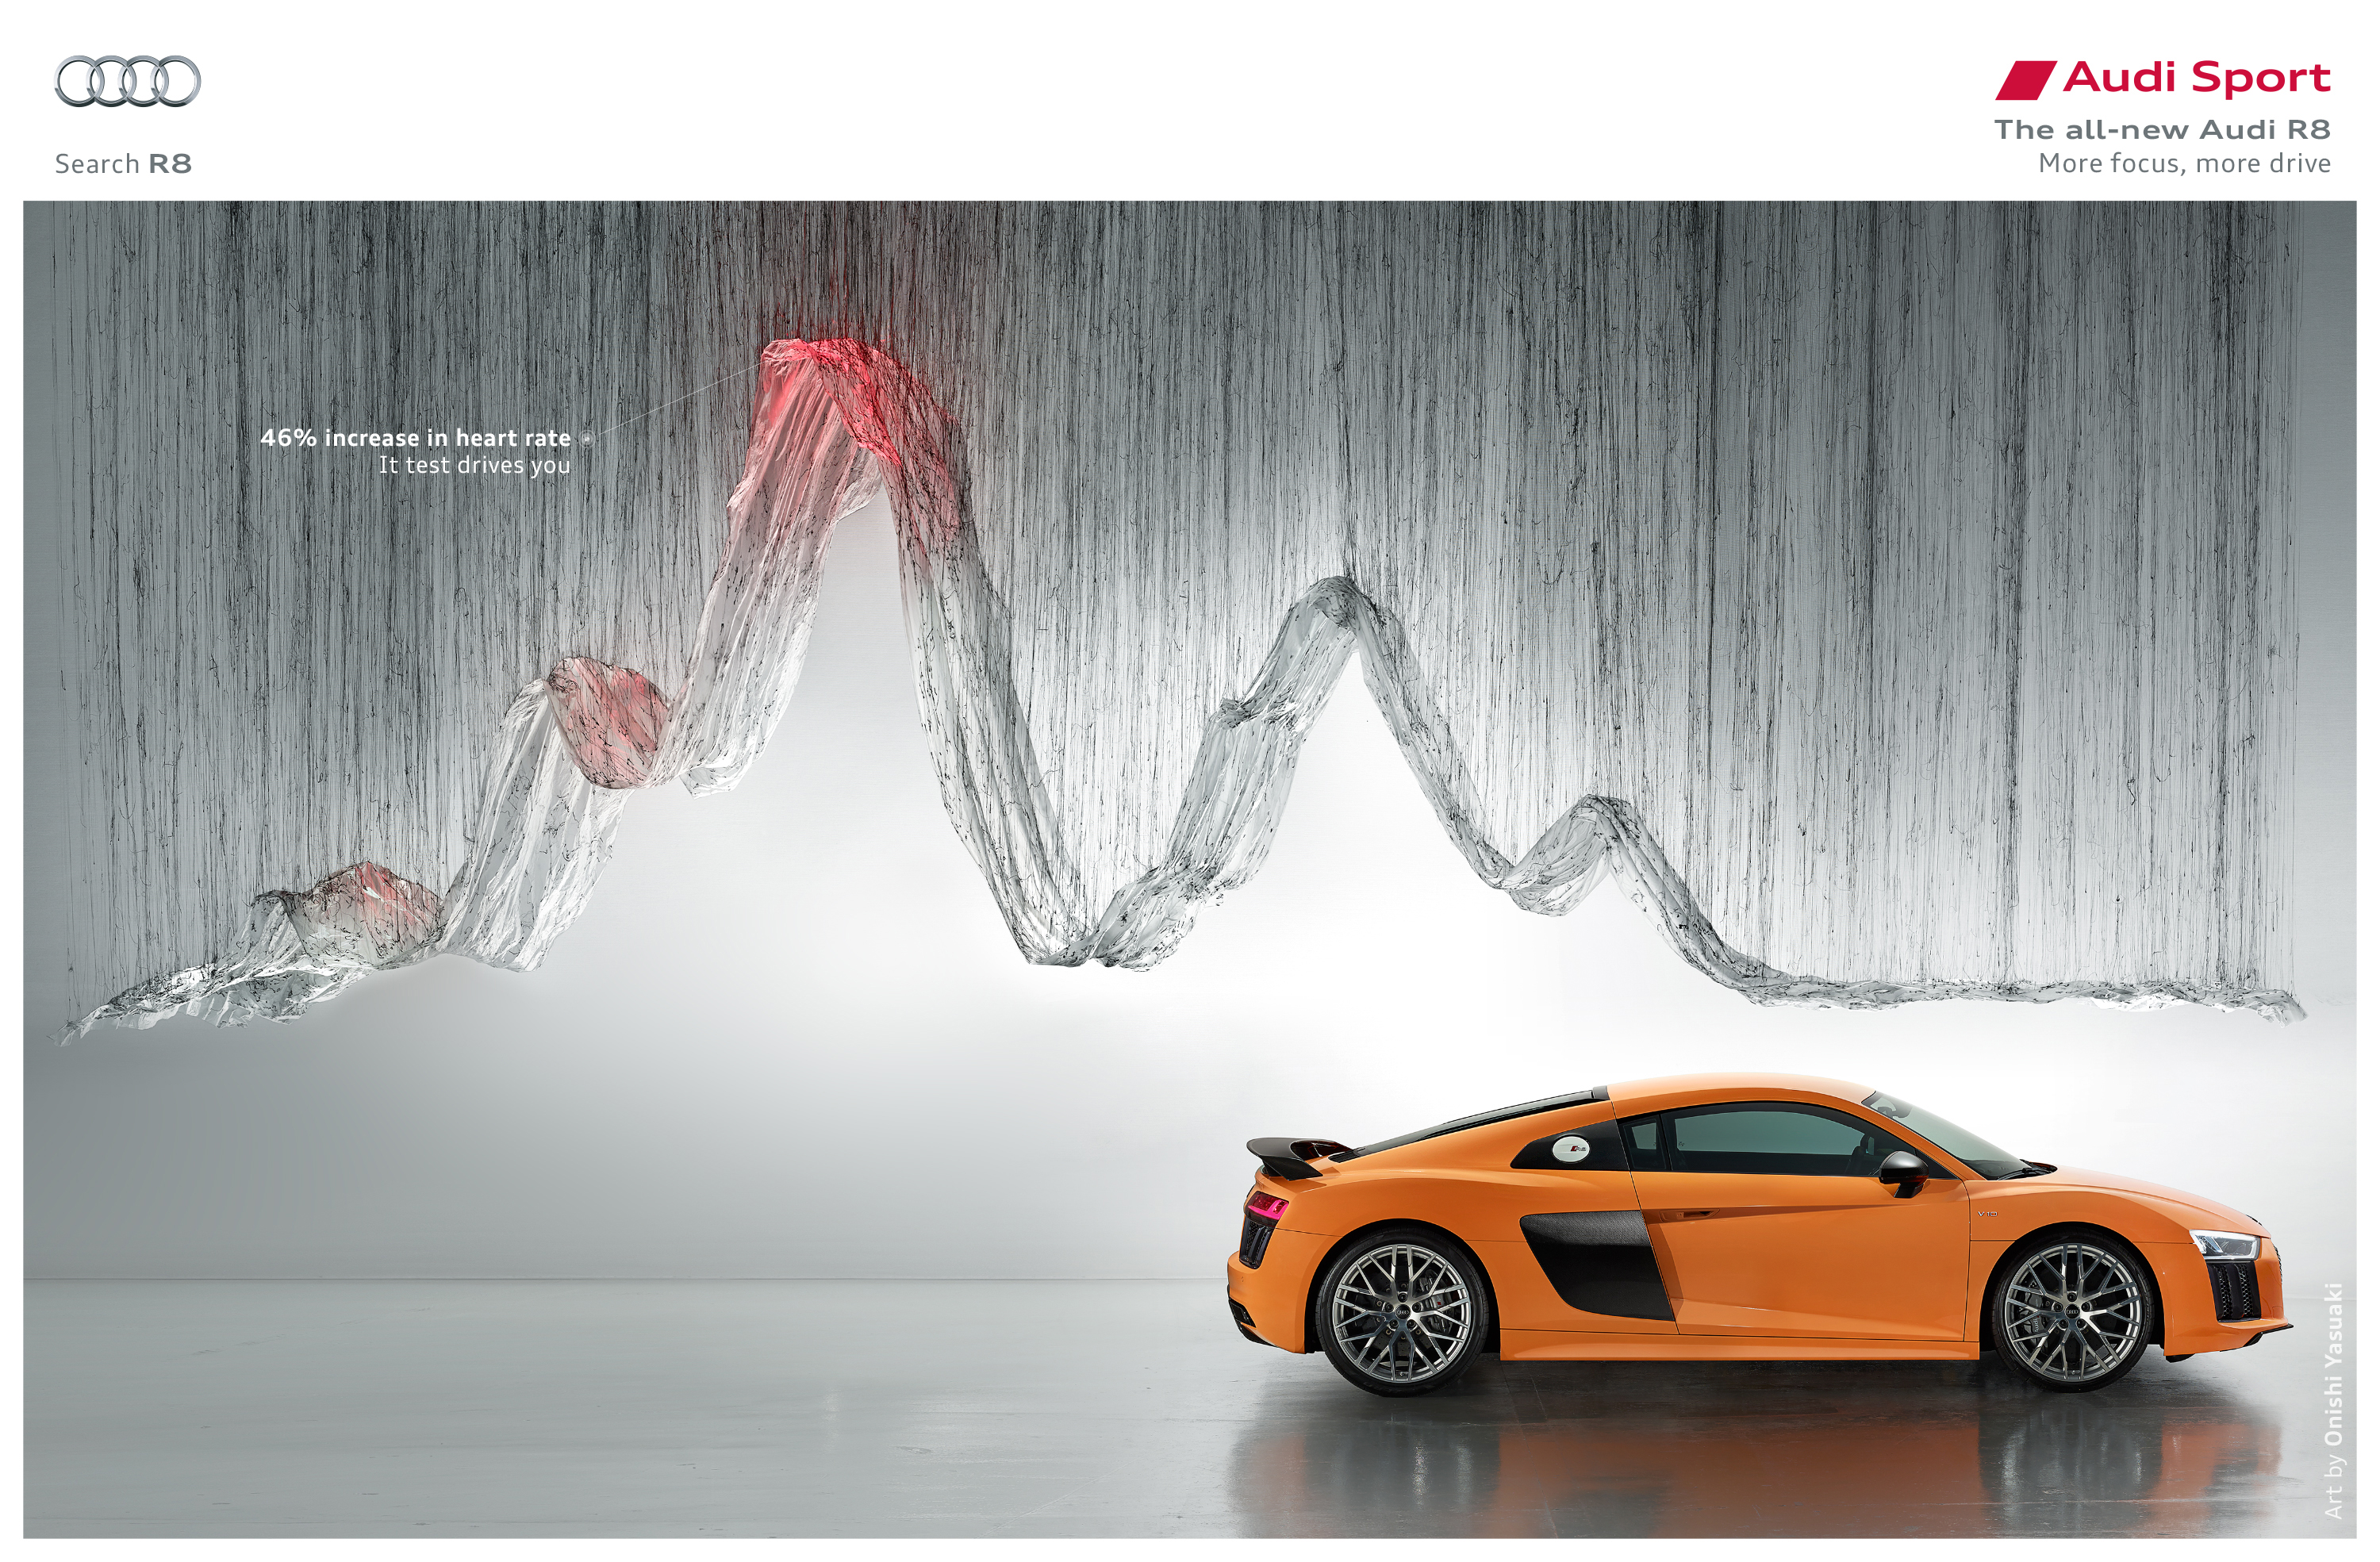 Audi R Test Drives You The Inspiration Room - Audi r8 commercial